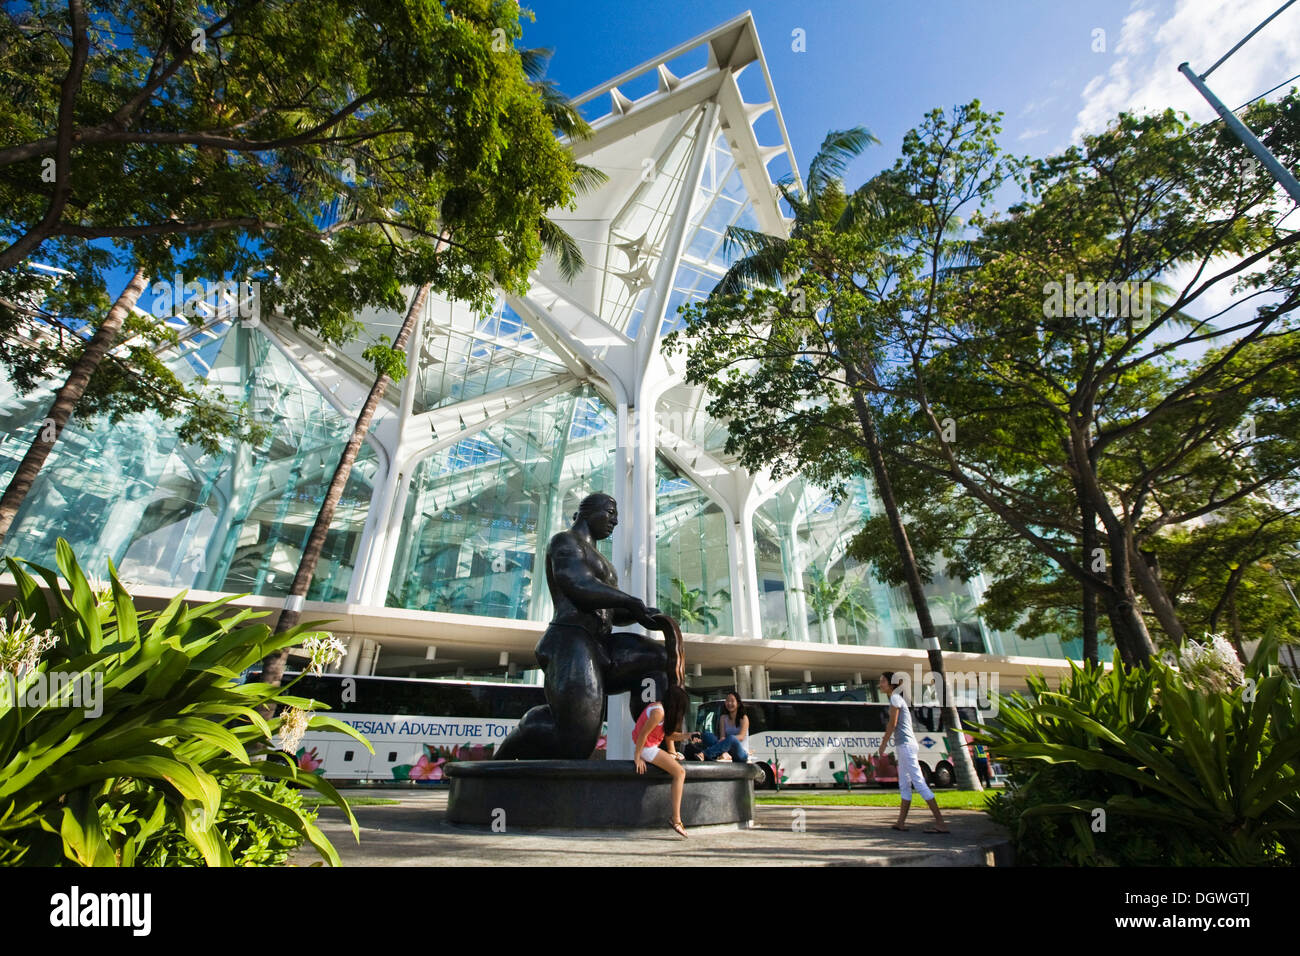 Hawaiian Convention Center, Honolulu, Hawai'i, USA - Stock Image